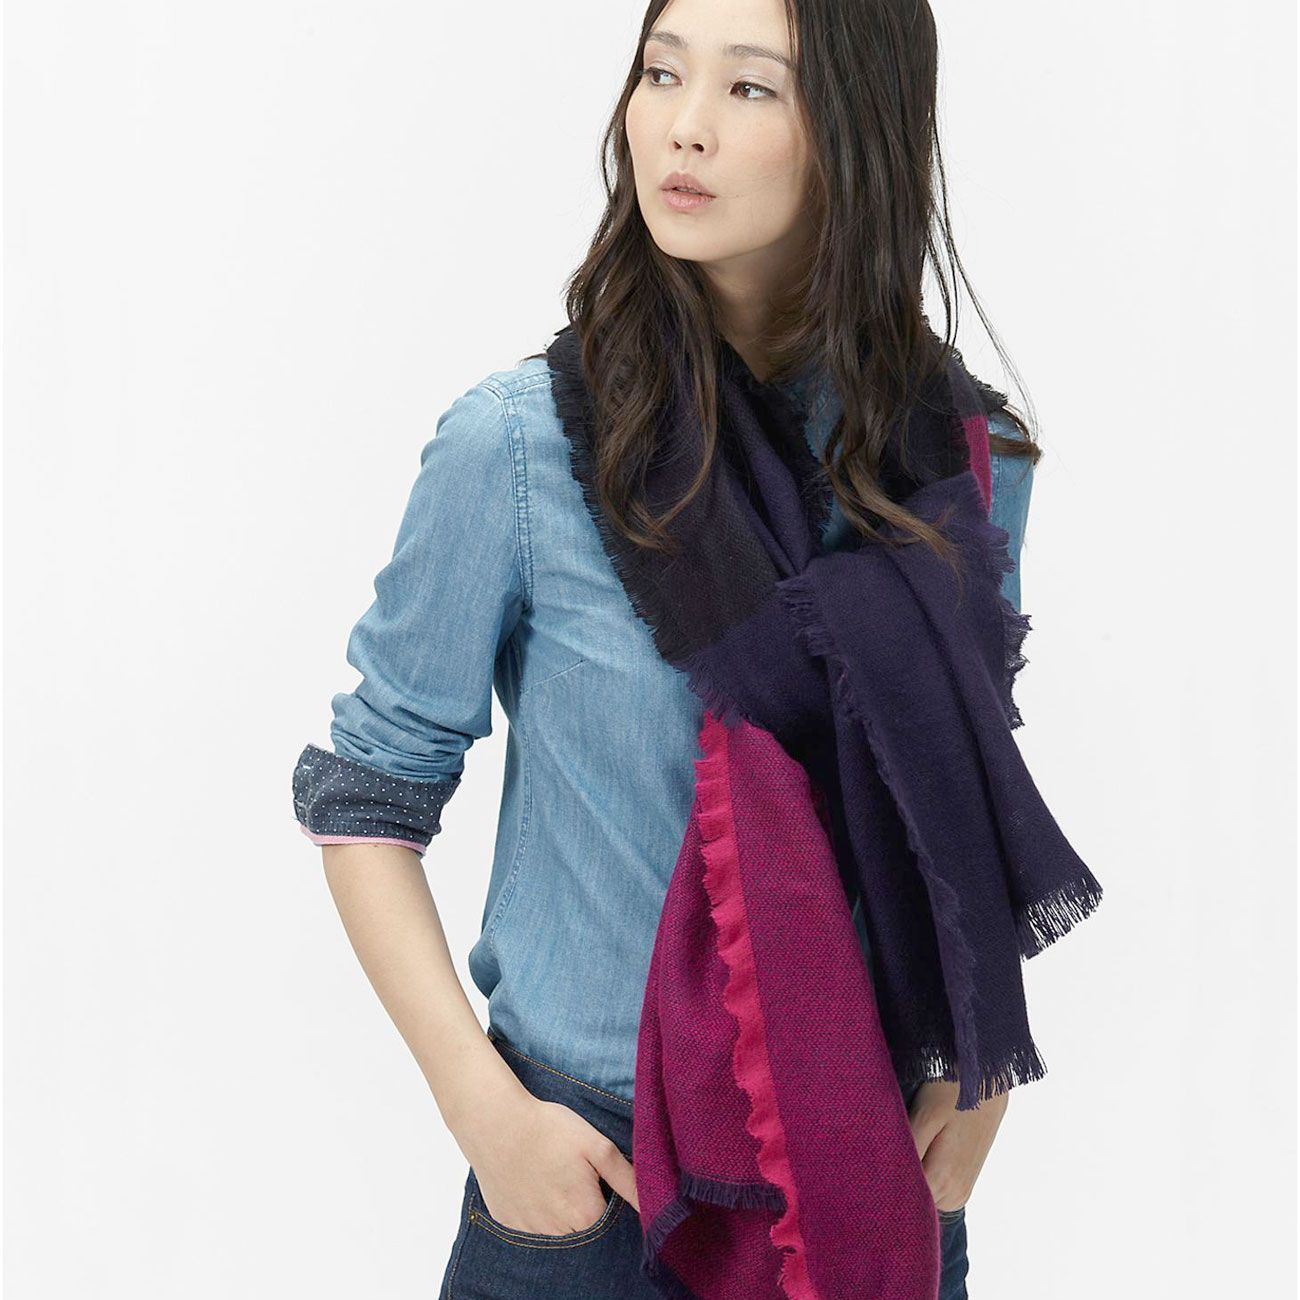 f2522d586fe71 How to Wear the Low Knot Scarf. Hang your scarf over your shoulders ...